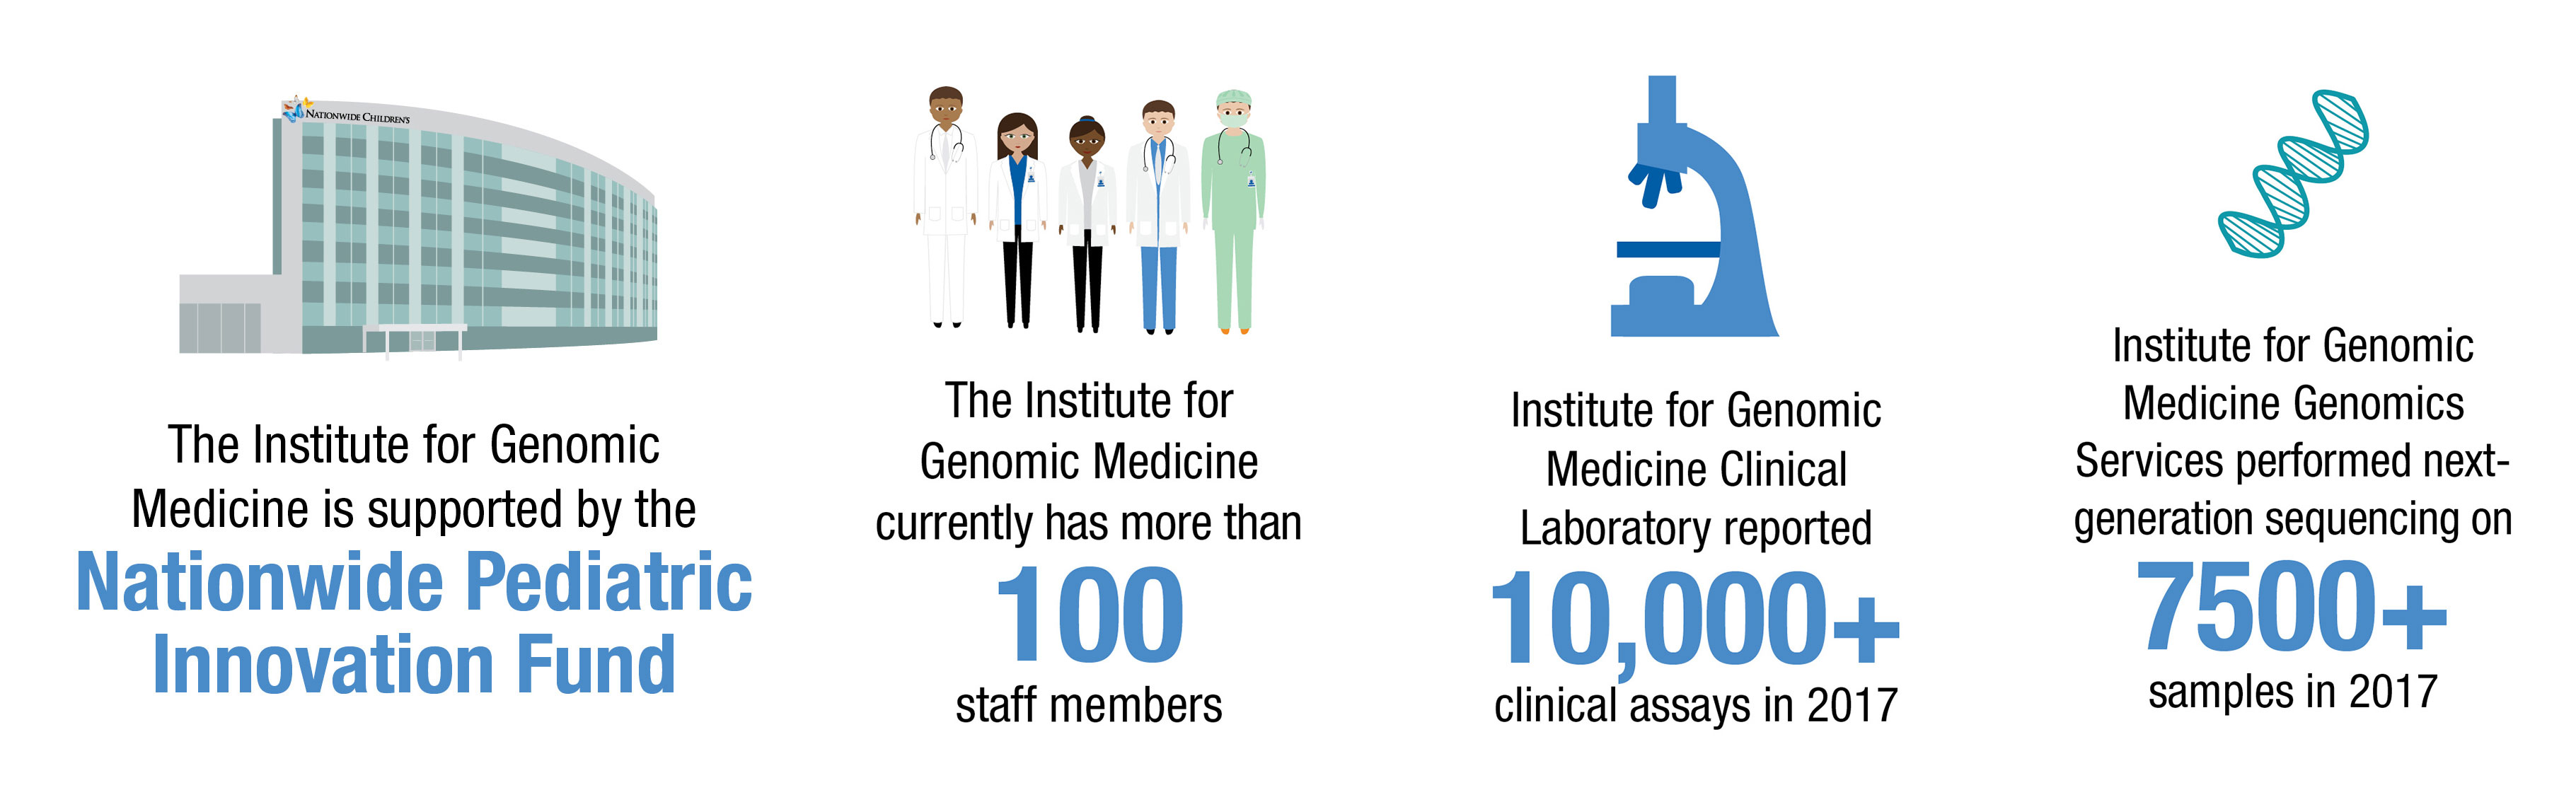 Institute for Genomic Medicine